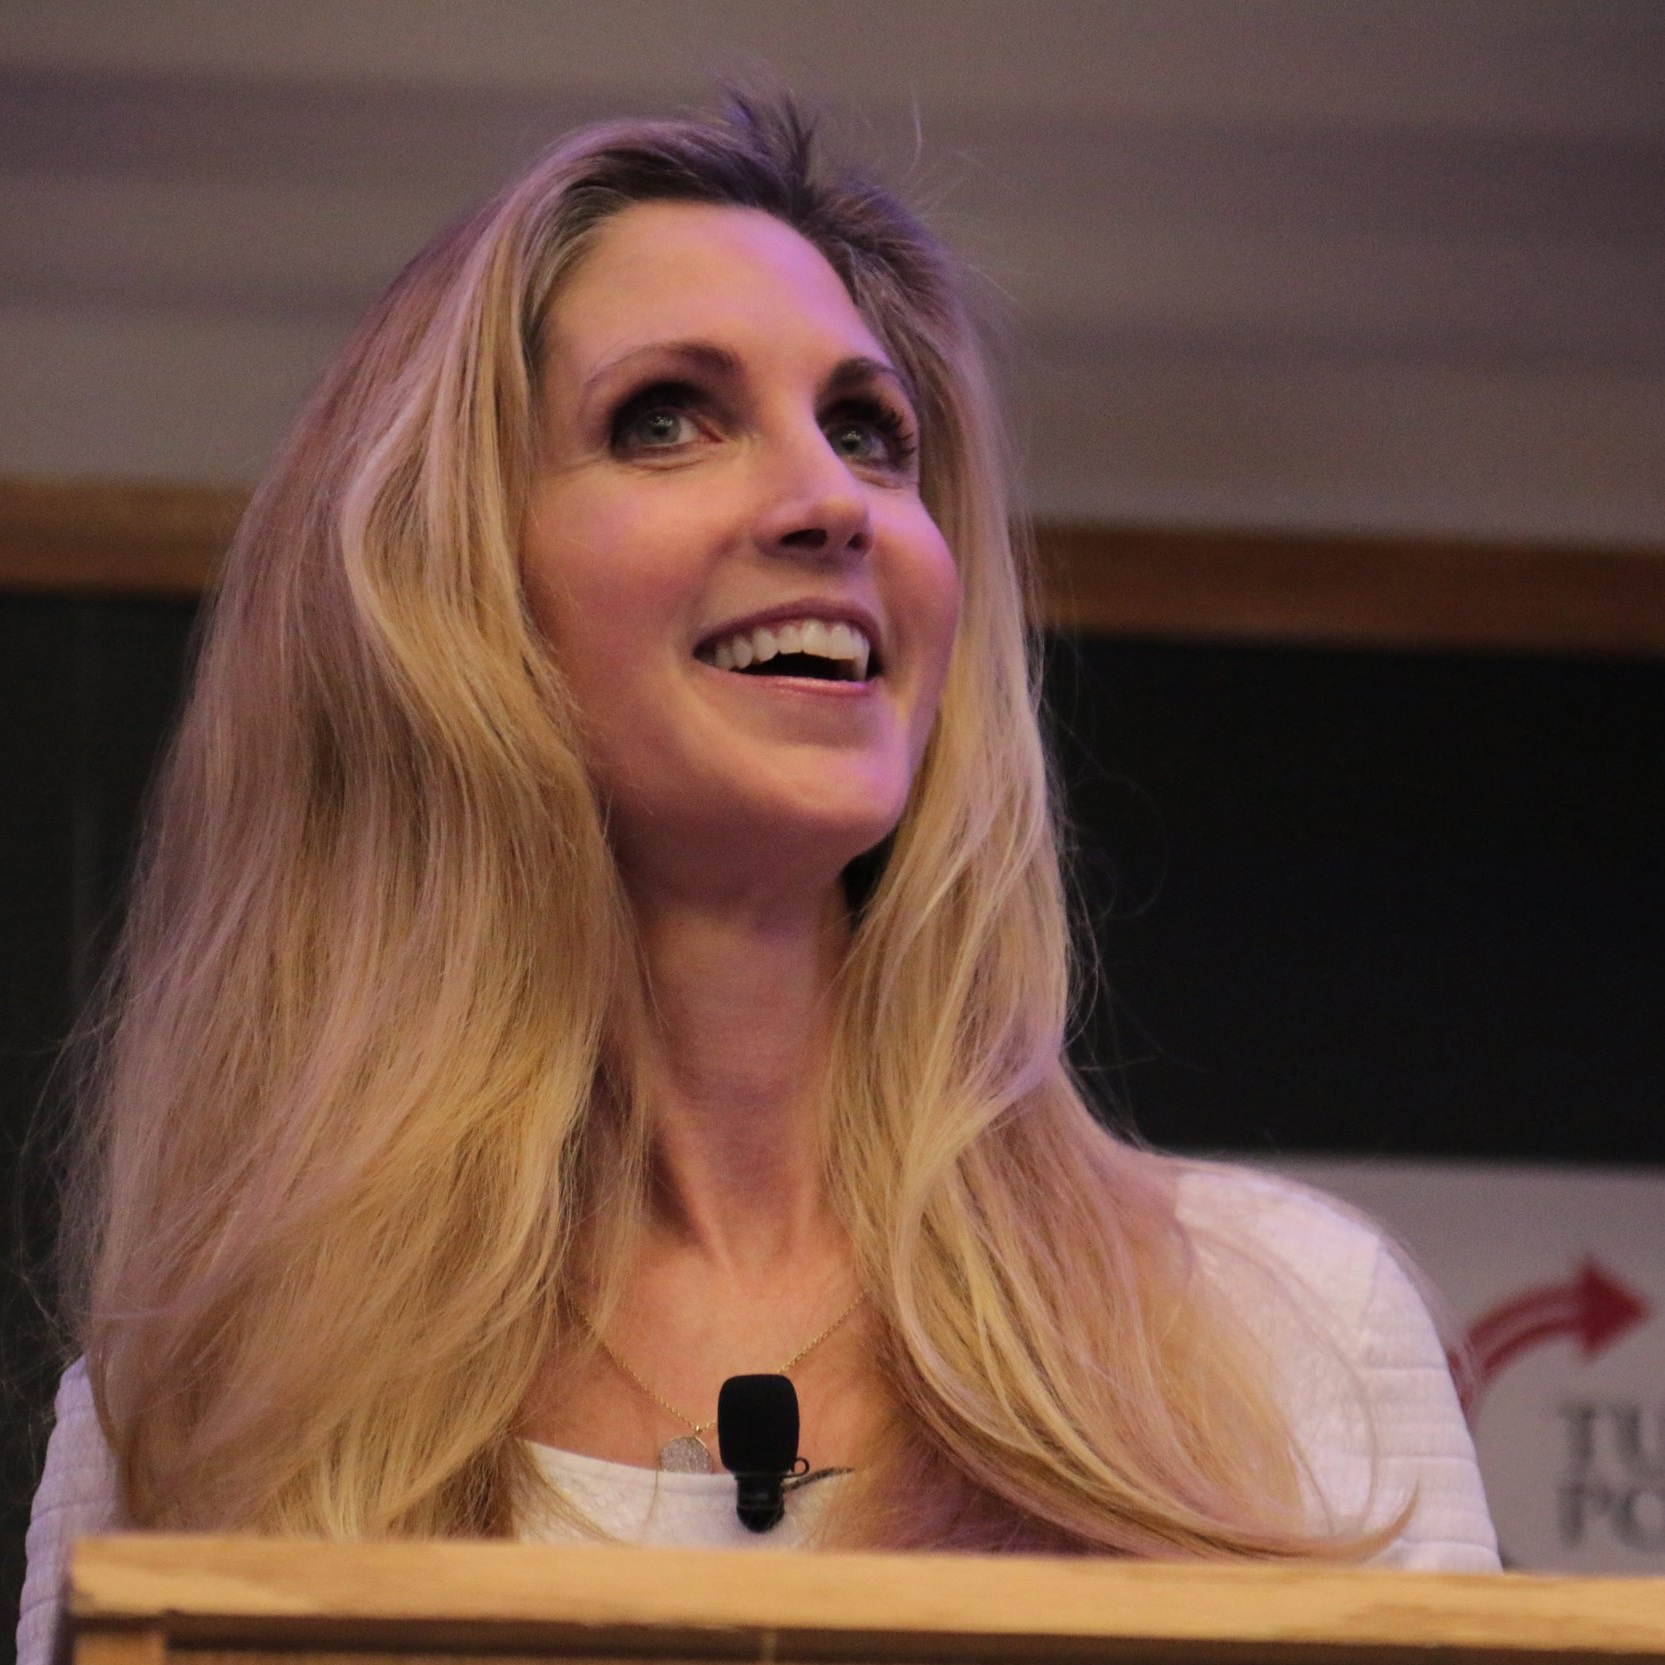 Ann Coulter to give talk at CU sponsored by Turning Point USA - Conservative commentator Ann Coulter will speak at CU on March 21 at the invitation of Turning Point USA.